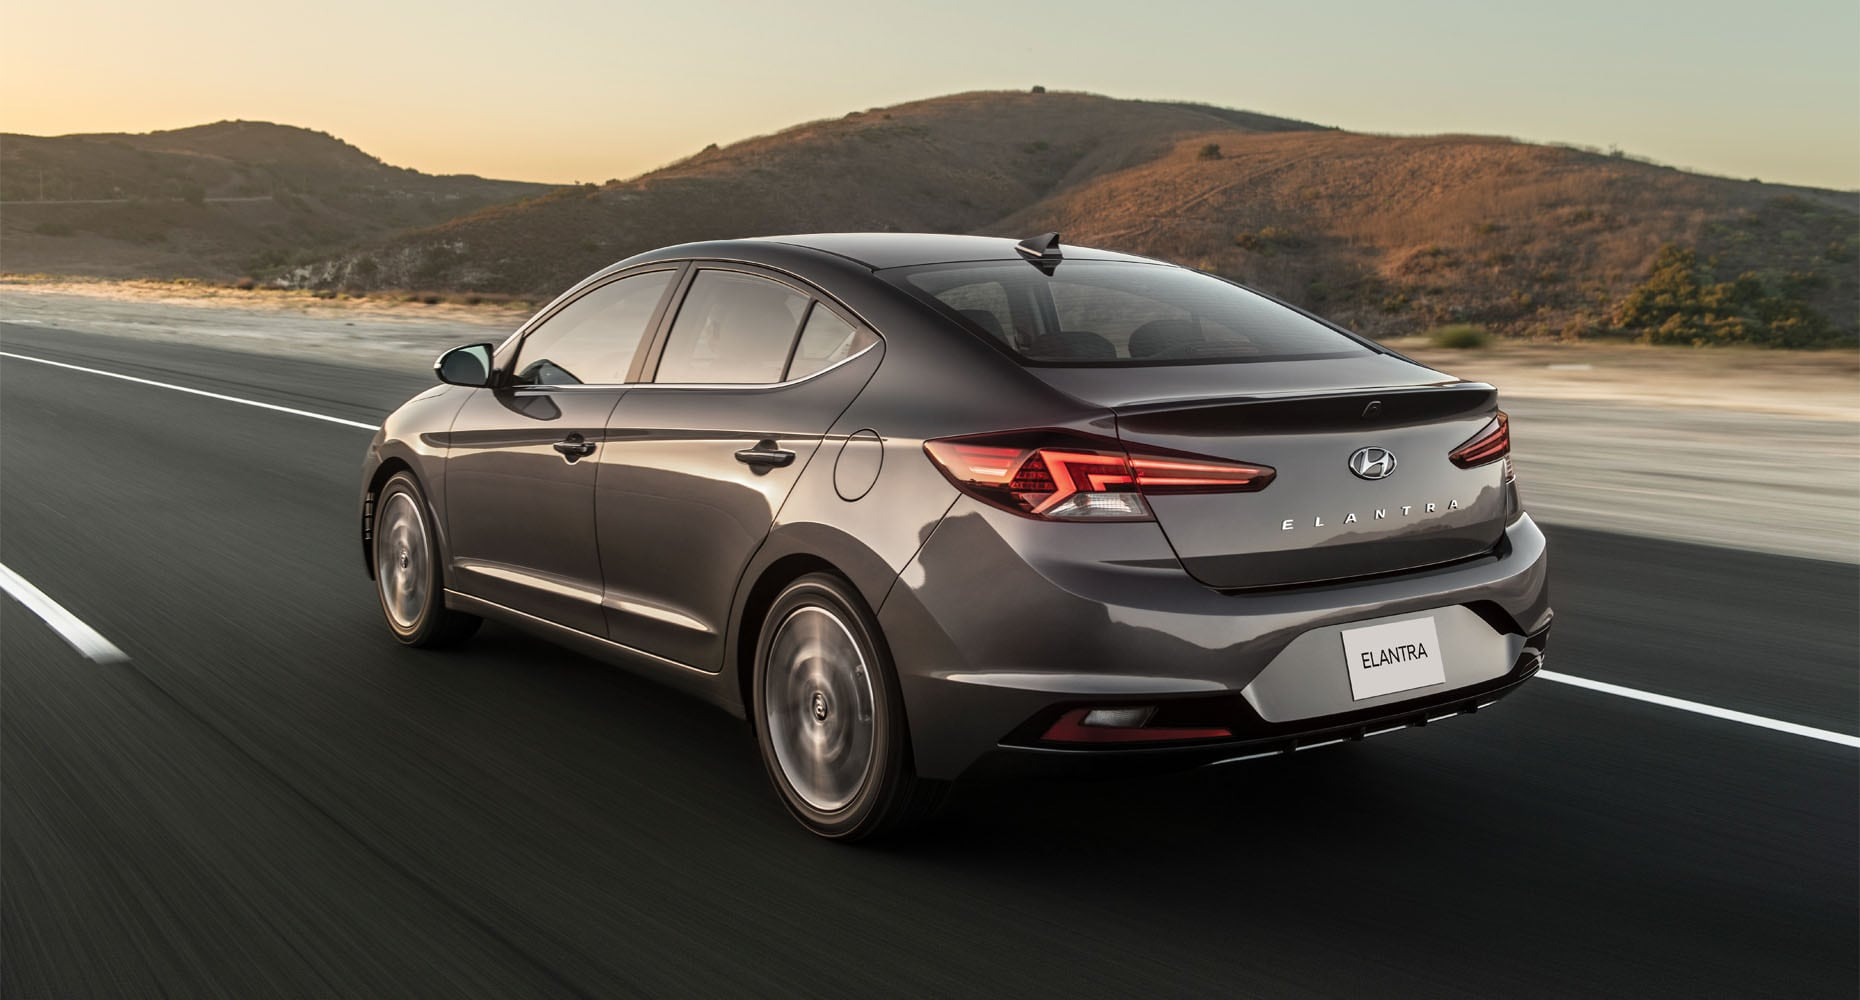 2019 Elantra | Redesigned for 2019 - Best Small Compact Car